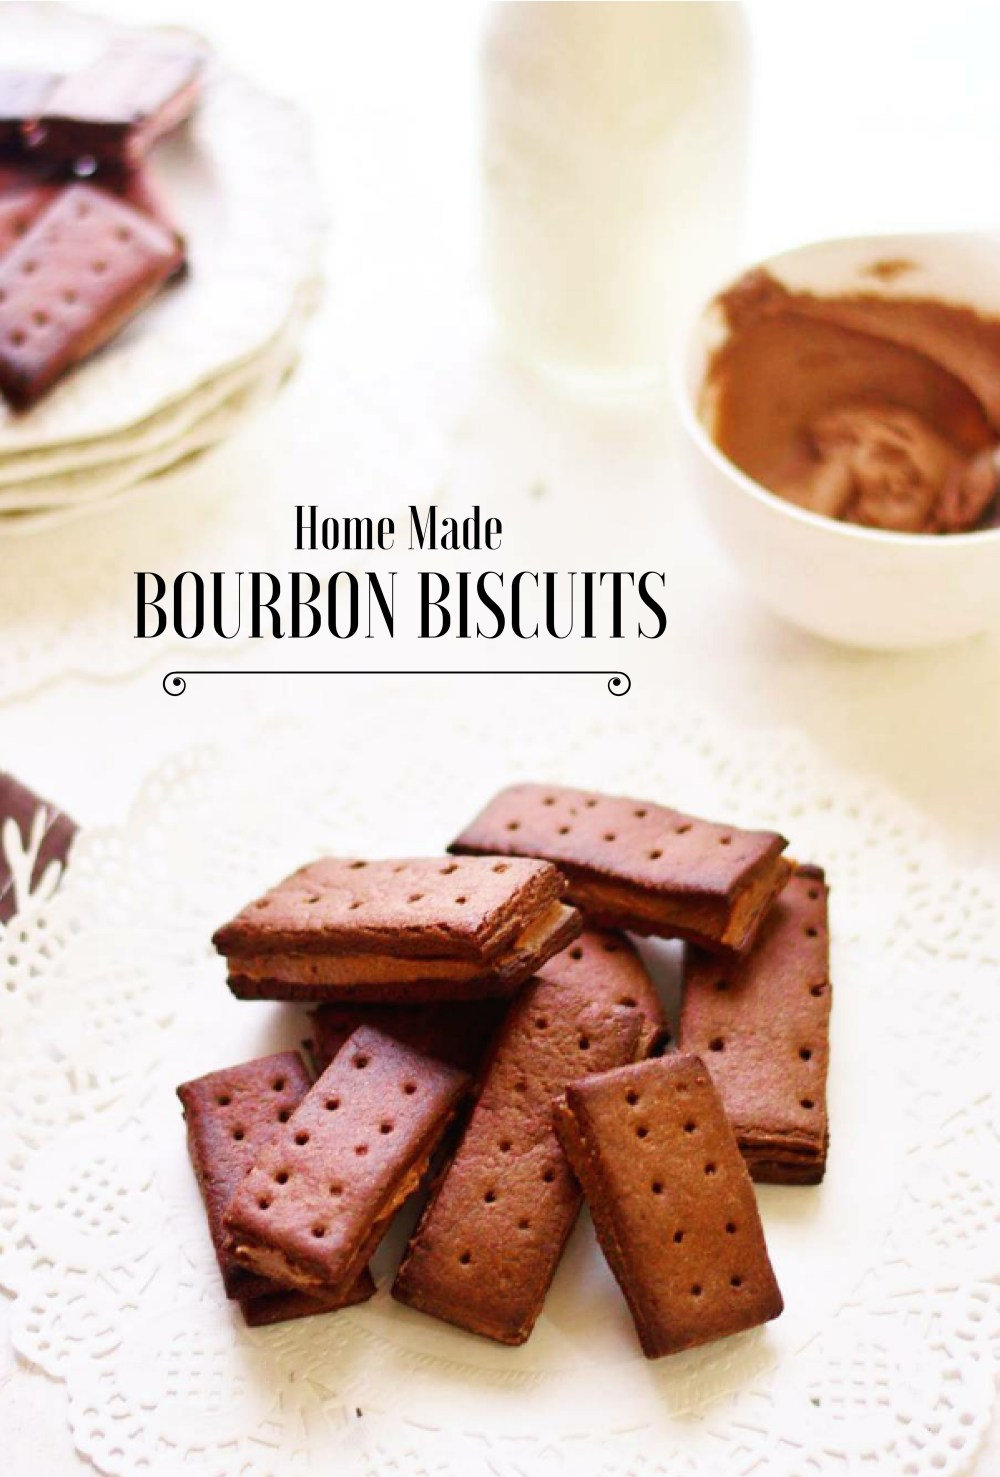 The Bourbon biscuit sometimes referred to as a Bourbon cream is a sandwich style biscuit consisting of two thin rectangular dark chocolate–flavored biscuits with a chocolate buttercream filling.